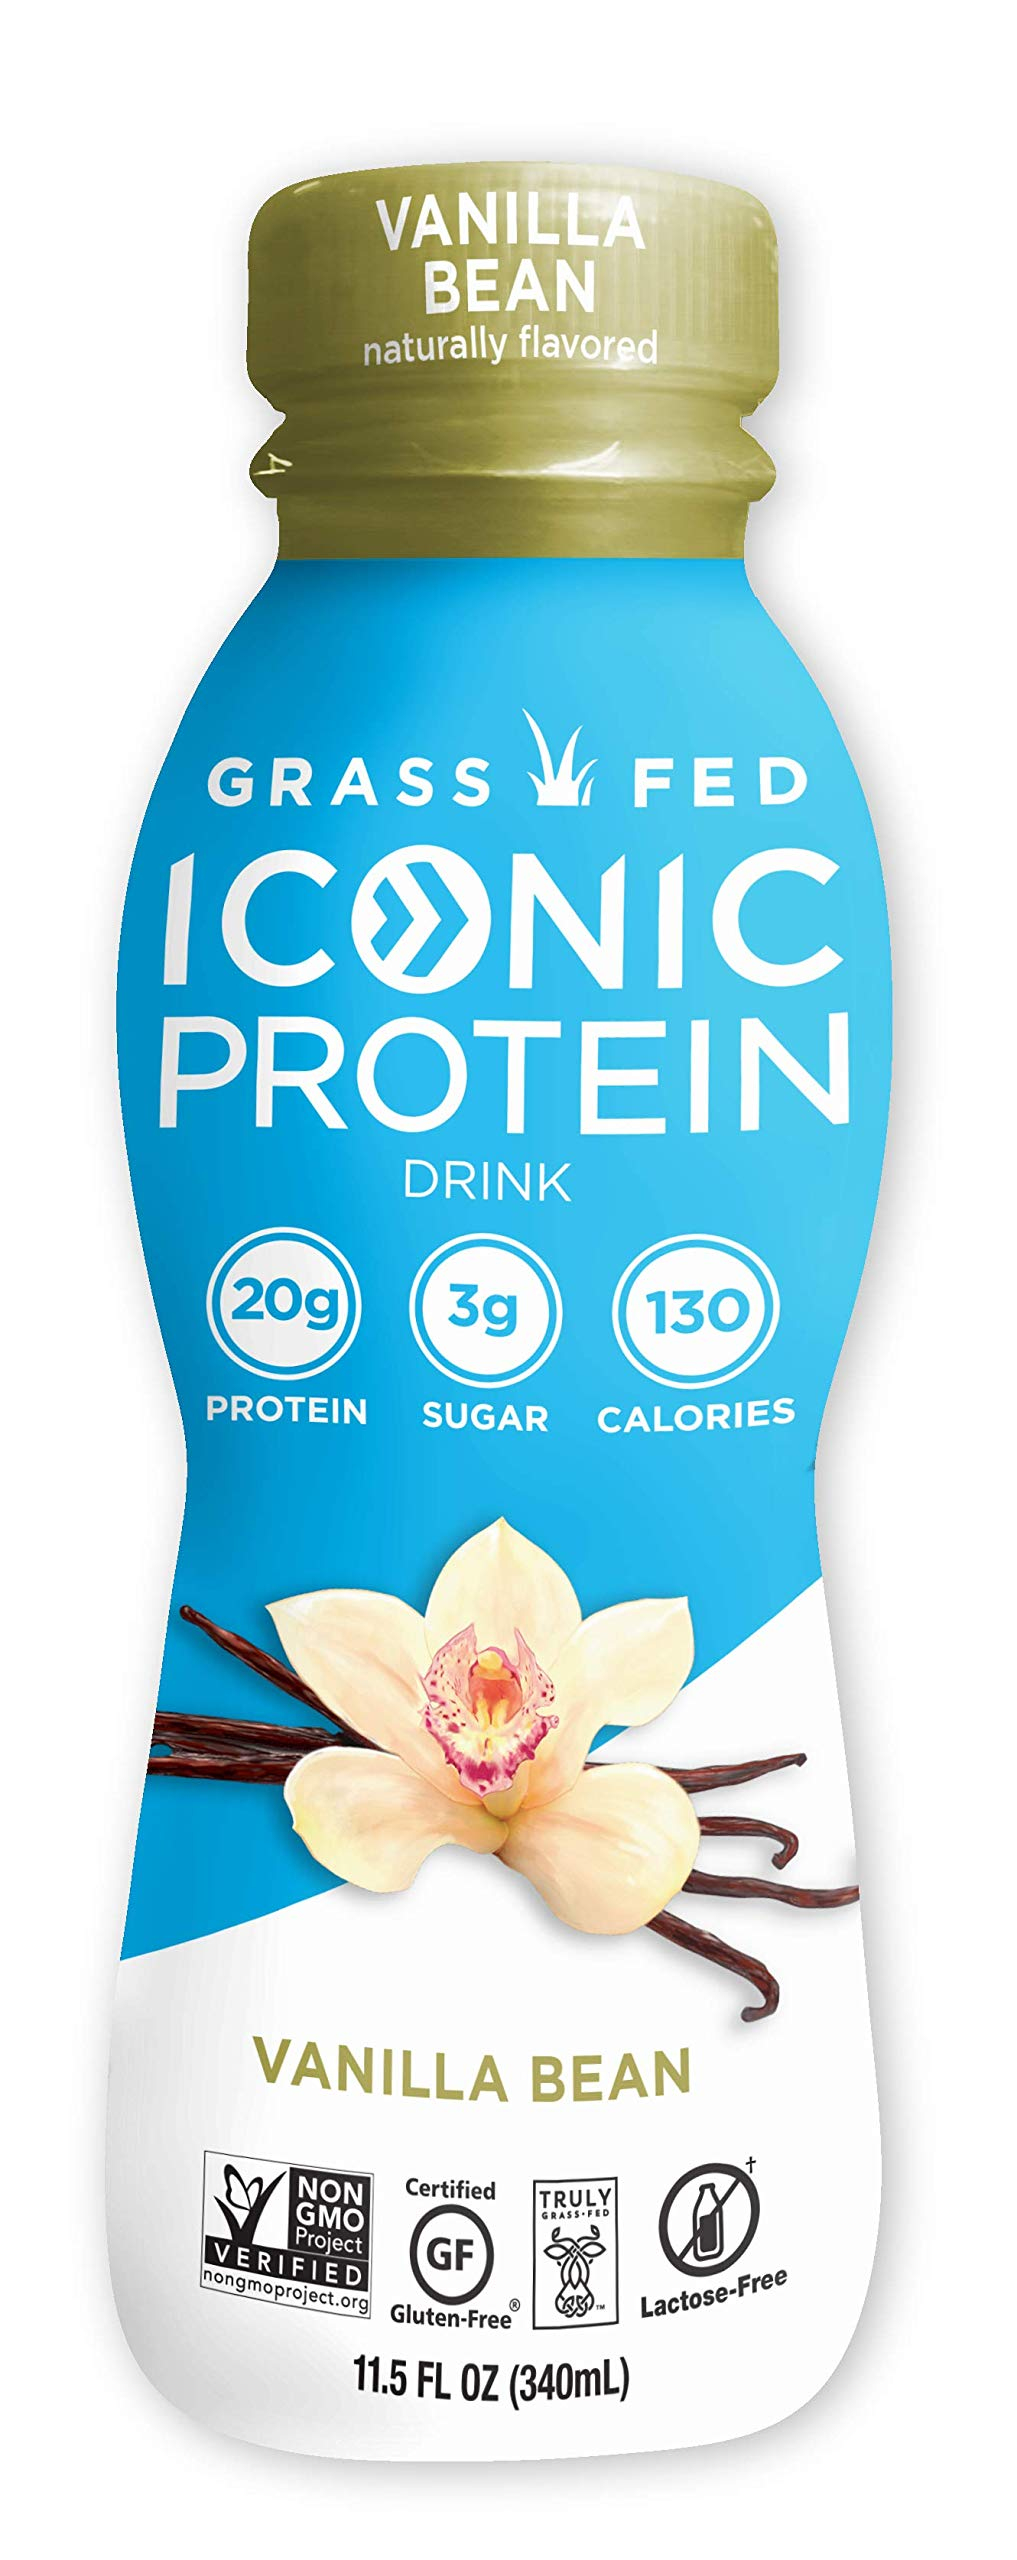 Iconic Low Carb High Protein Drinks, Vanilla Bean, 11.5oz, 12 pack